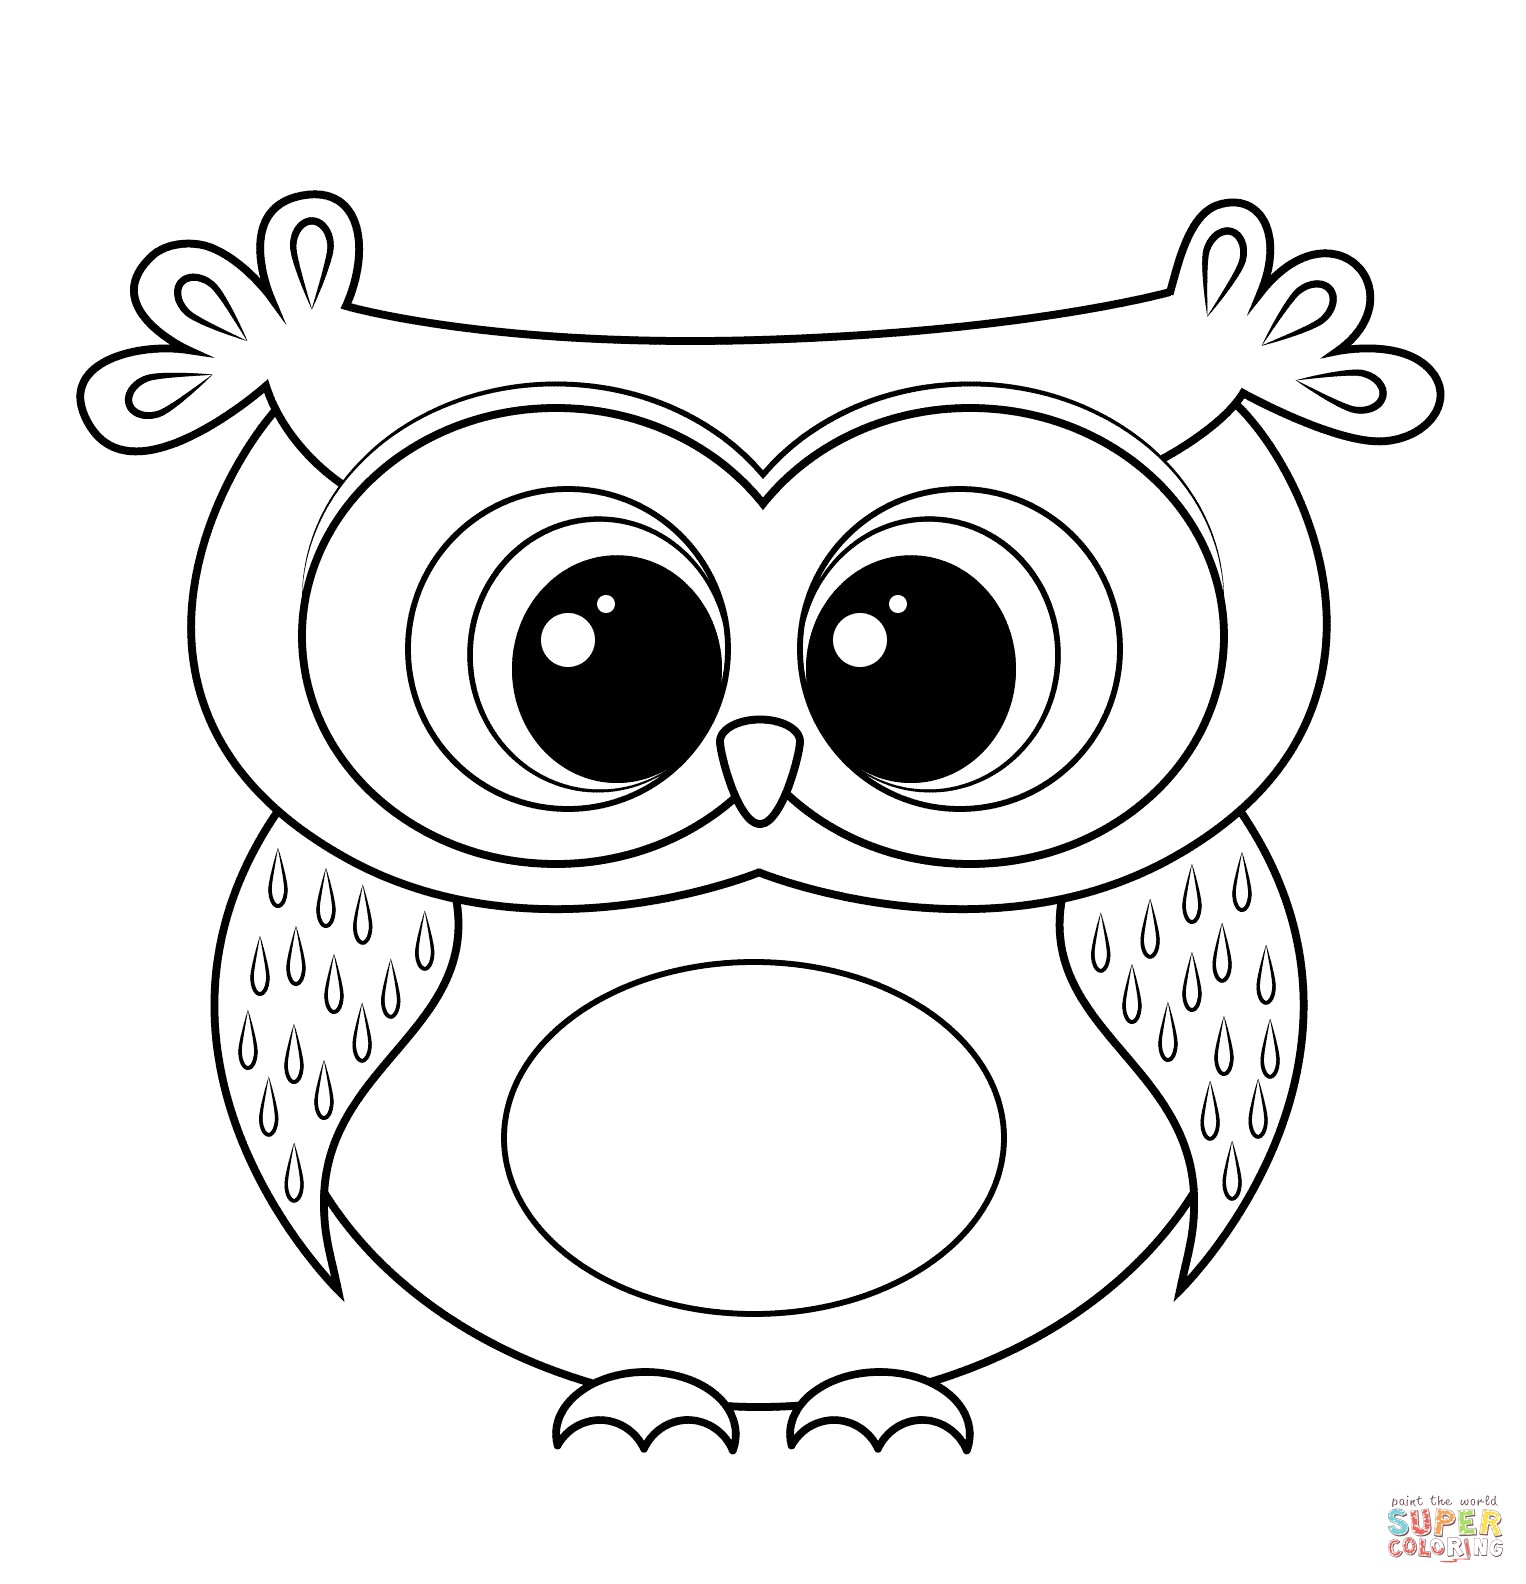 Clipart owl black and white. Coloring pages ideas